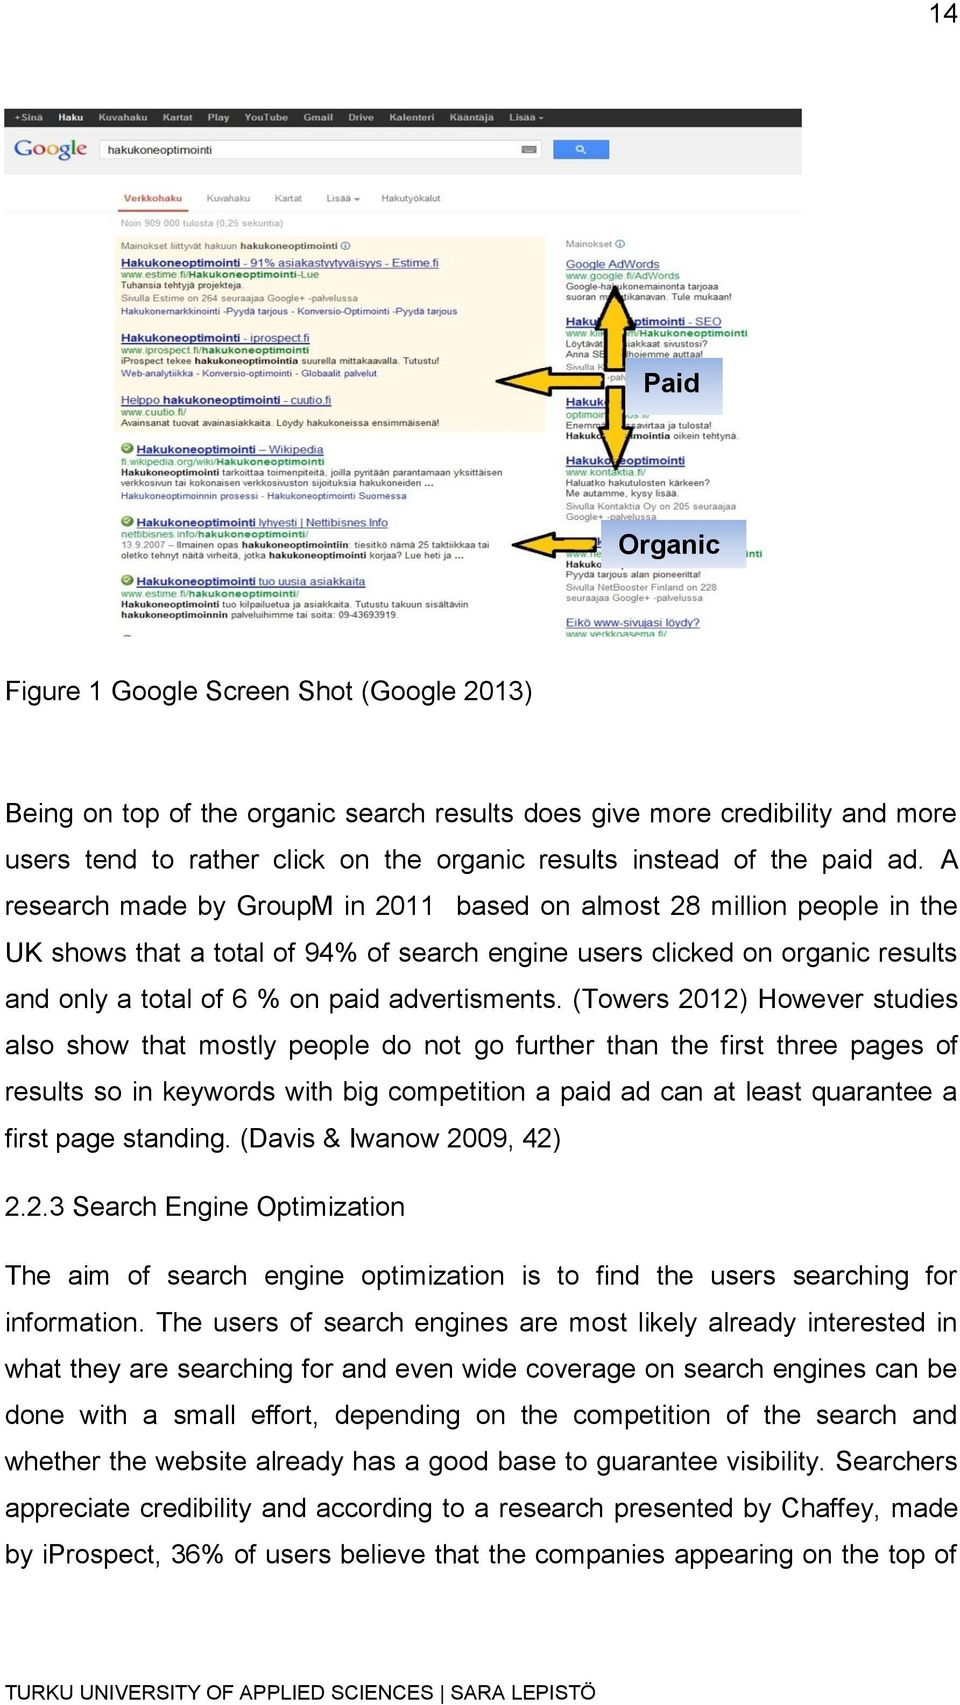 A research made by GroupM in 2011 based on almost 28 million people in the UK shows that a total of 94% of search engine users clicked on organic results and only a total of 6 % on paid advertisments.